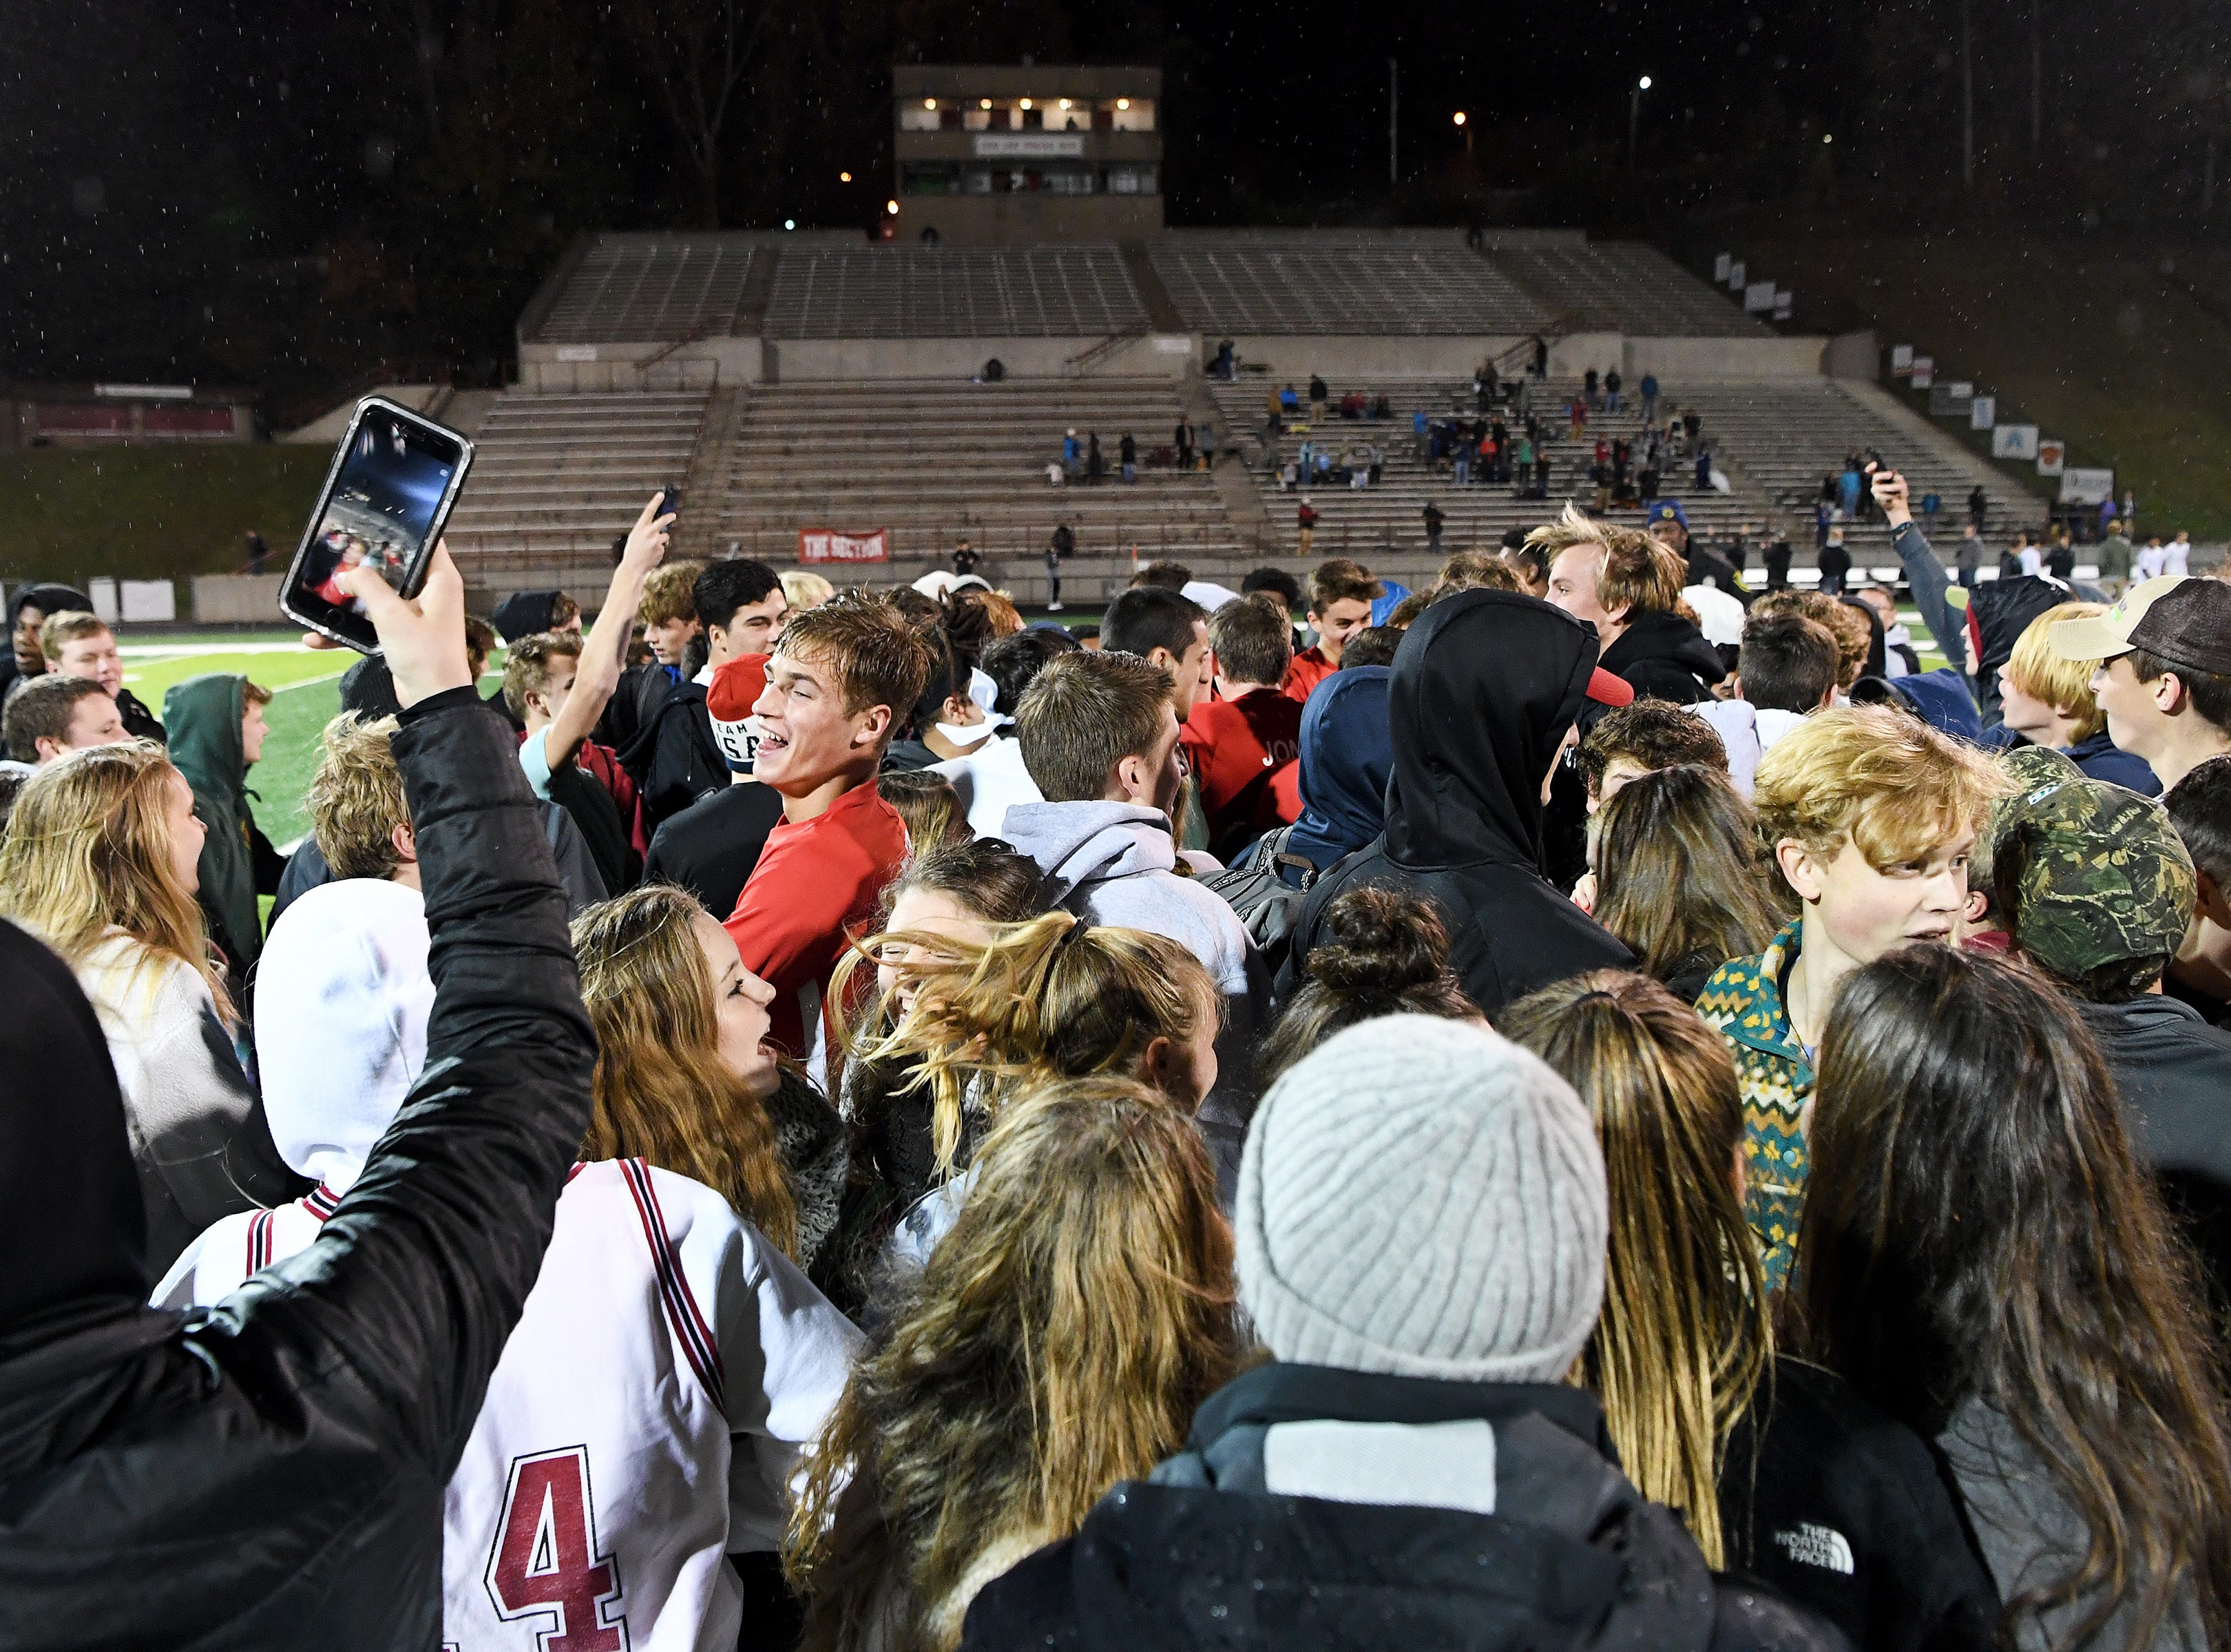 Asheville's Justin Fleer jumps up and down with the student section after they rushed the field to celebrate the Cougars' 1-0 playoff win over Watauga to advance at Asheville High School on Nov. 8, 2018.